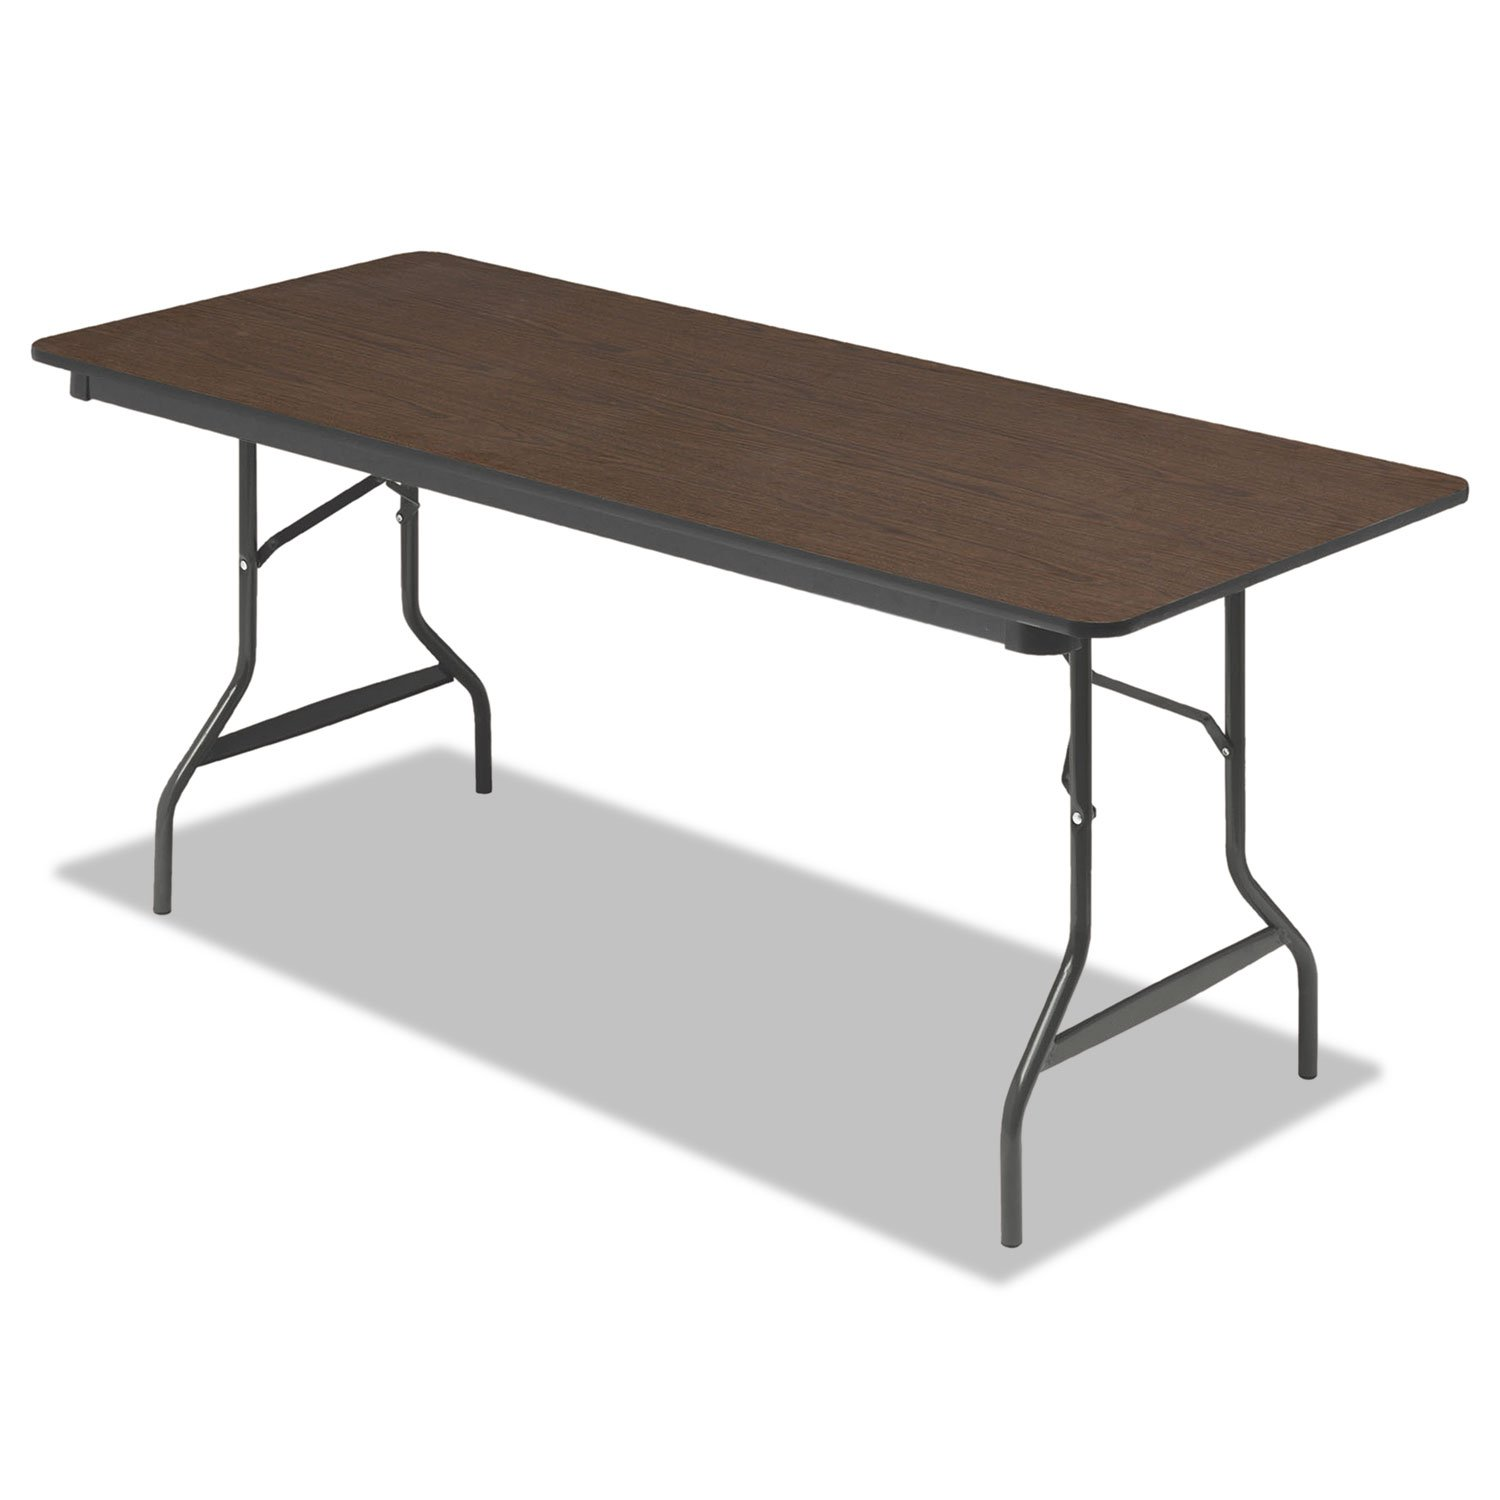 Iceberg 55324 Economy Wood Laminate Folding Table, Rectangular, 72w x 30d x 29h, Walnut by Iceberg